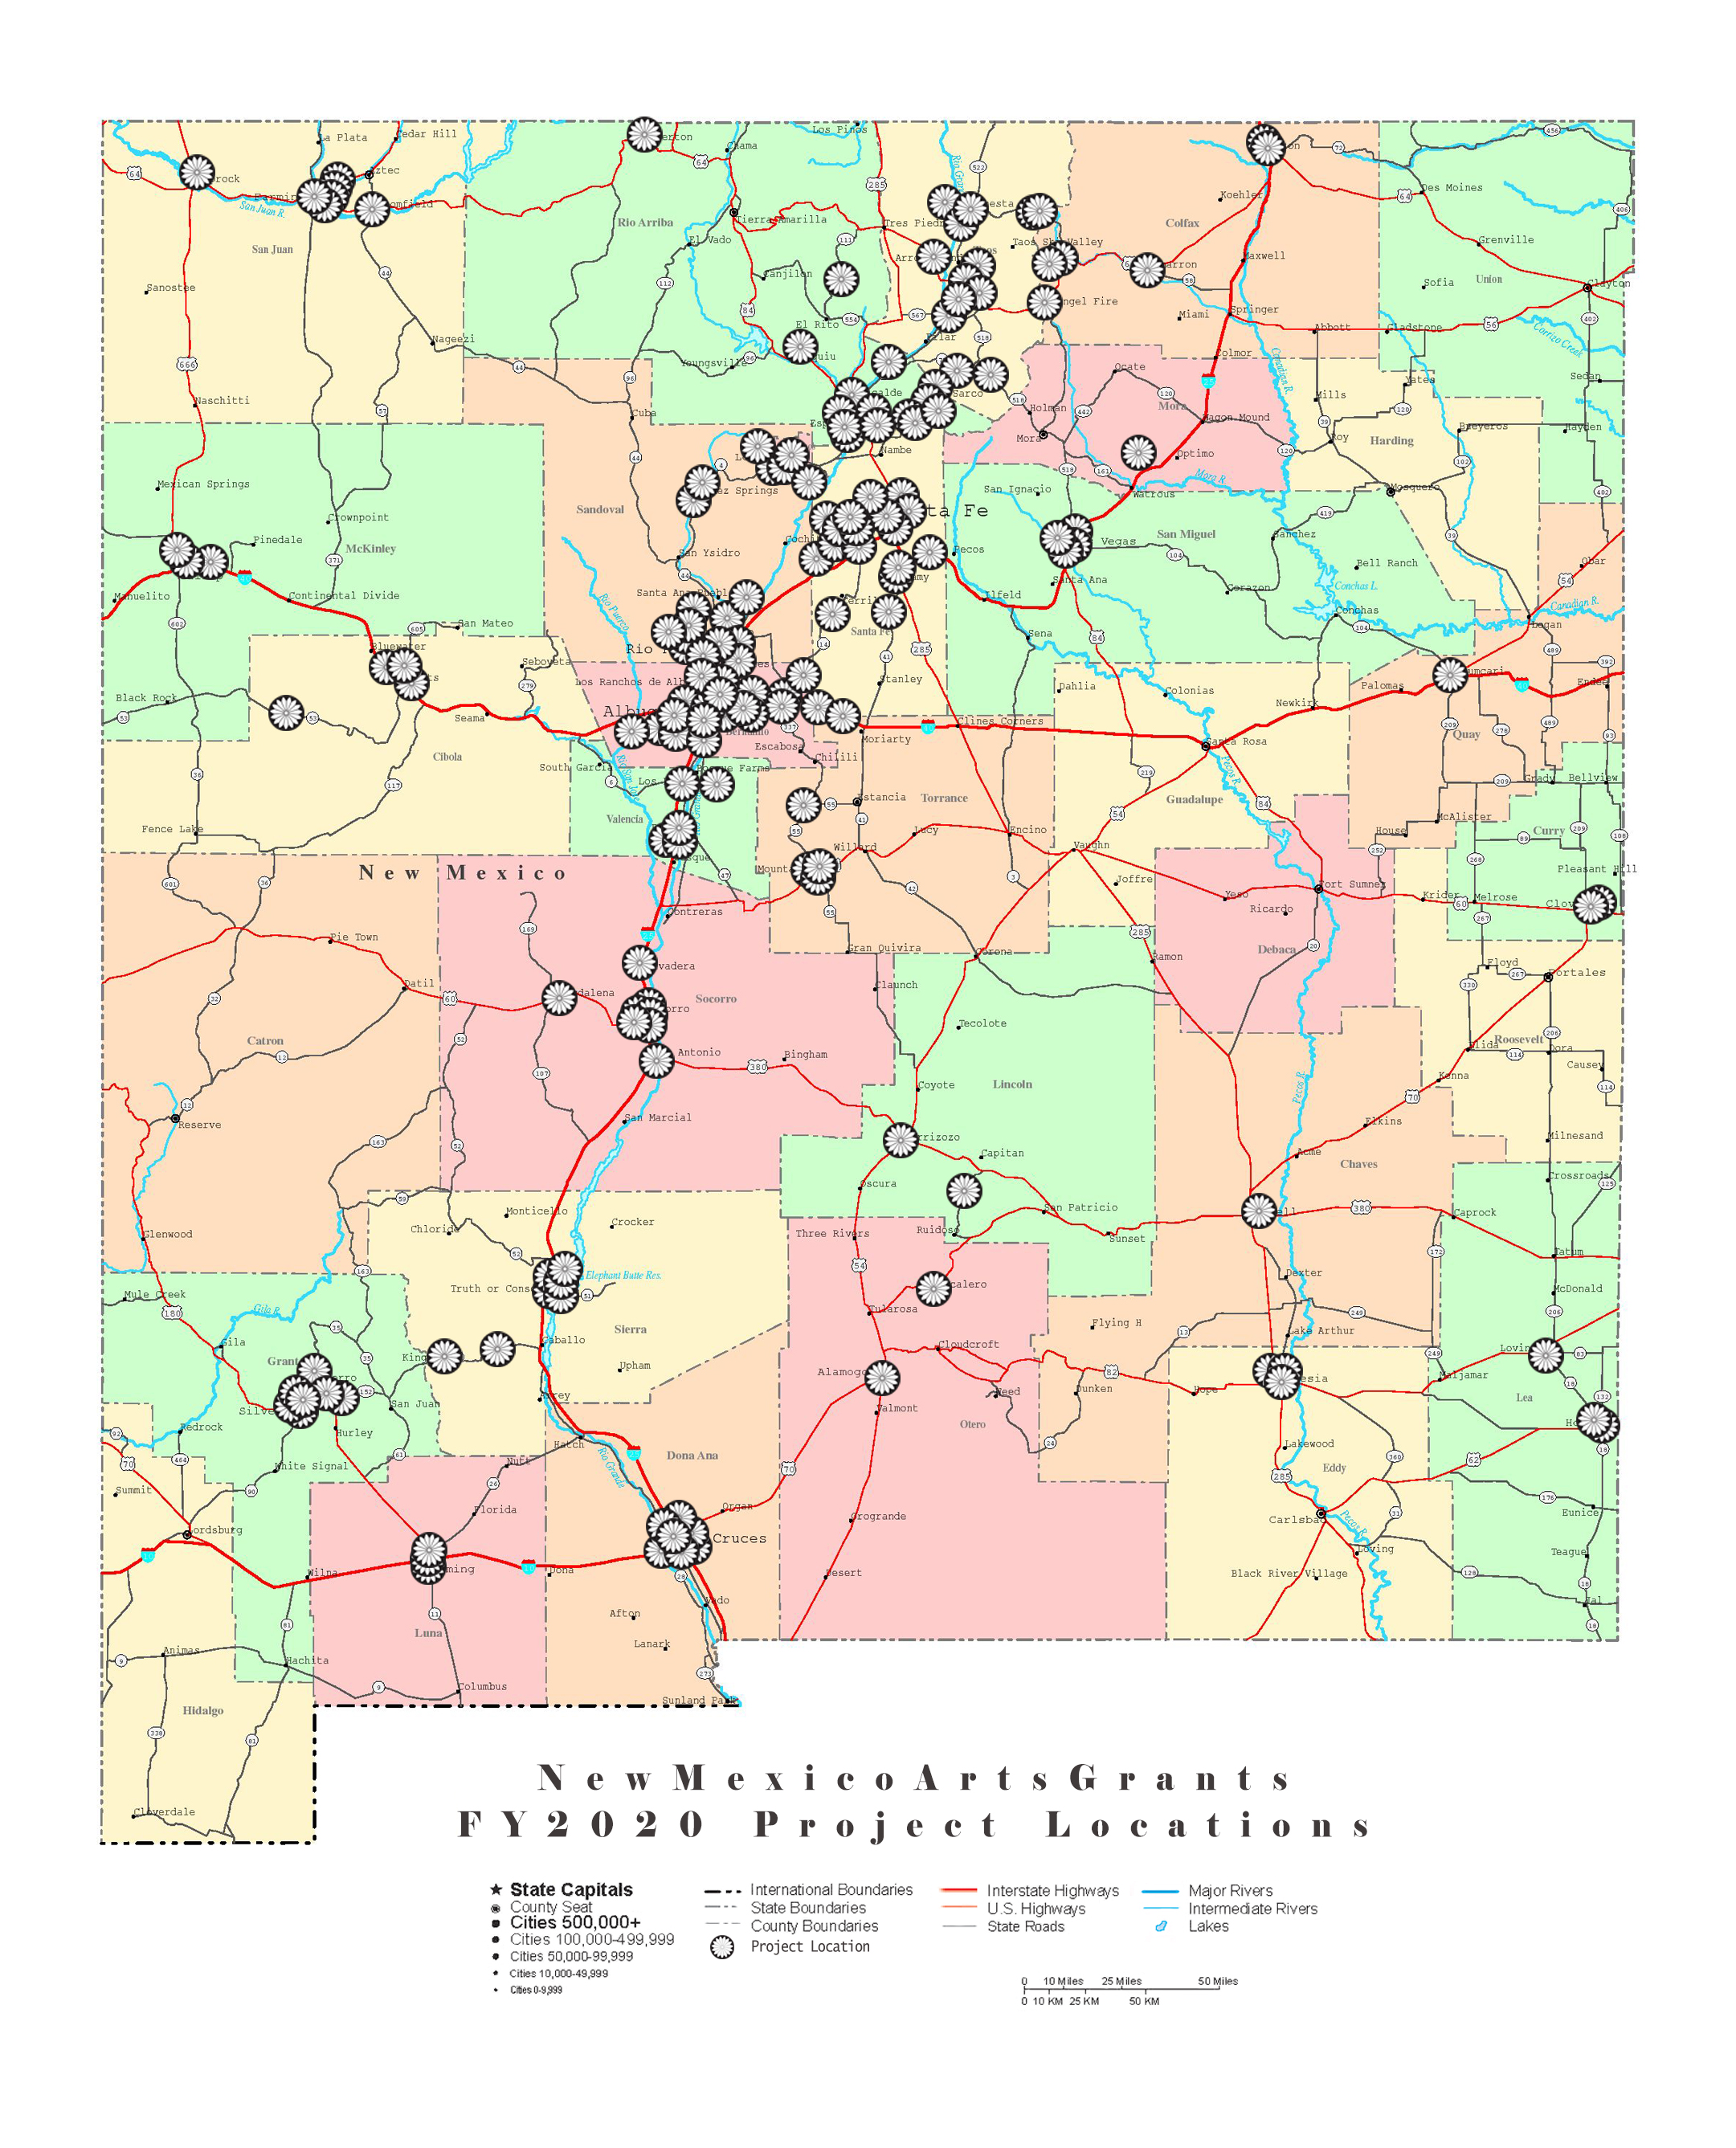 Project Location map of grantee projects across New Mexico for FY20